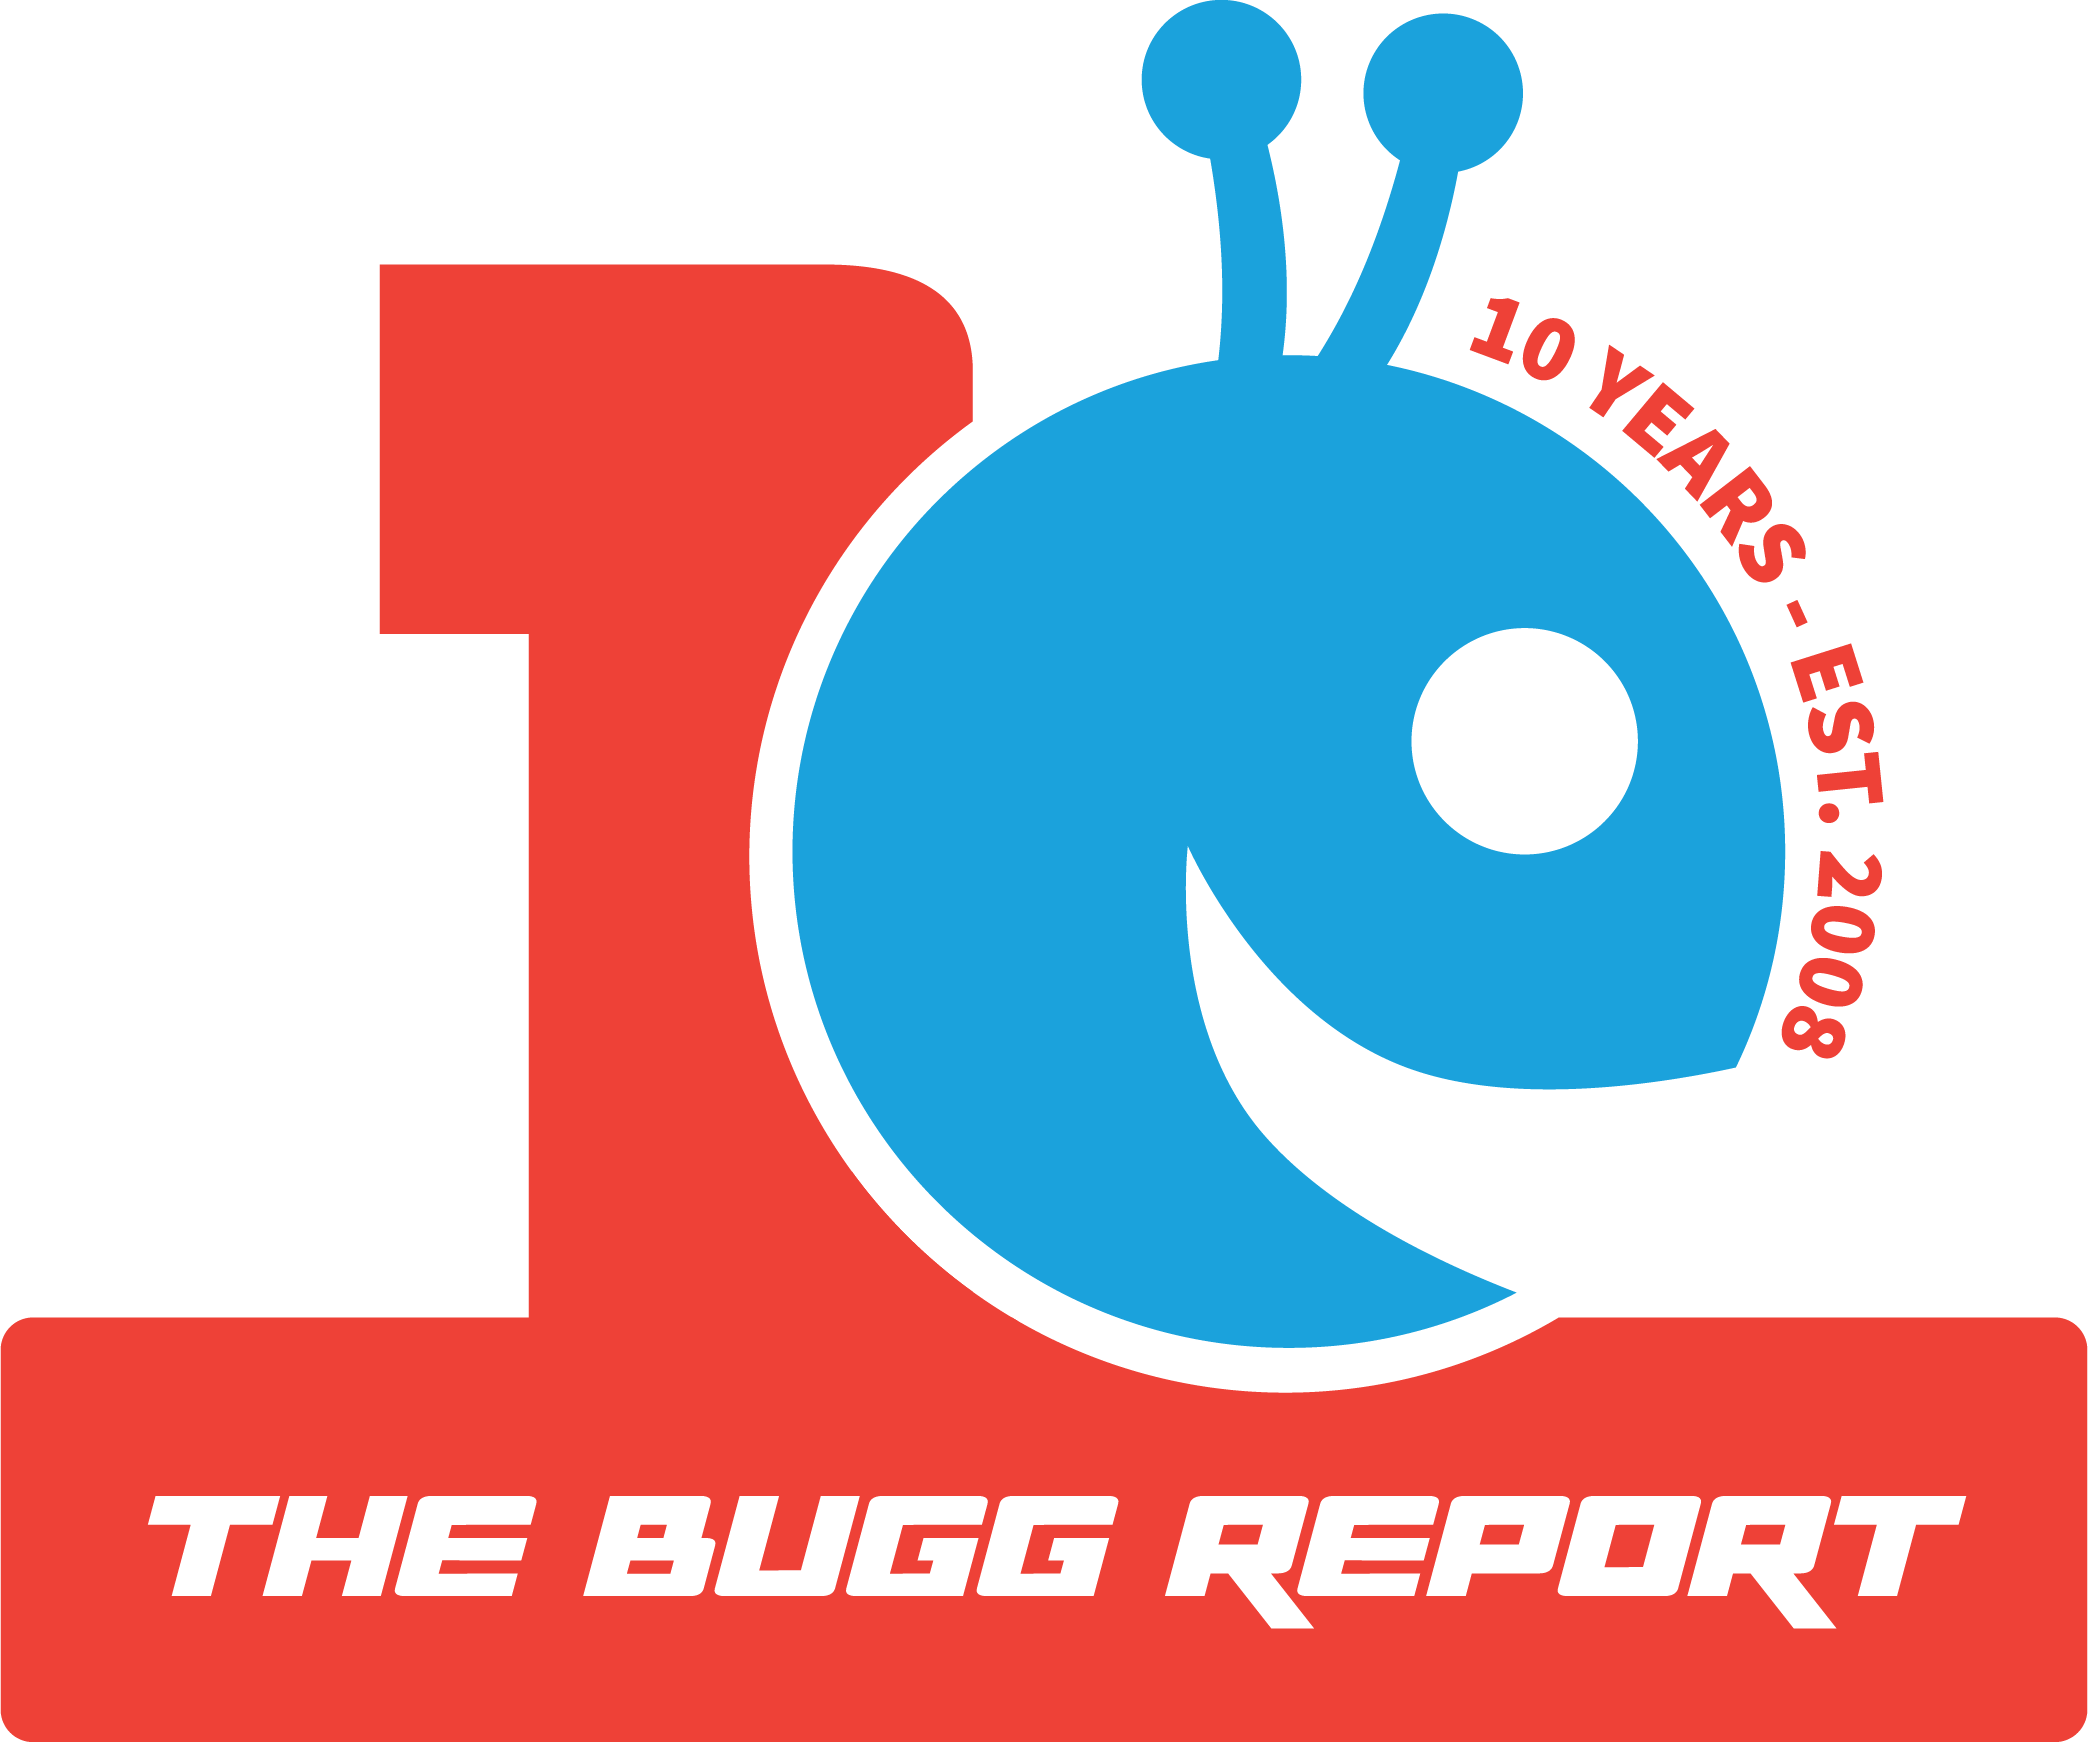 The Bugg Report